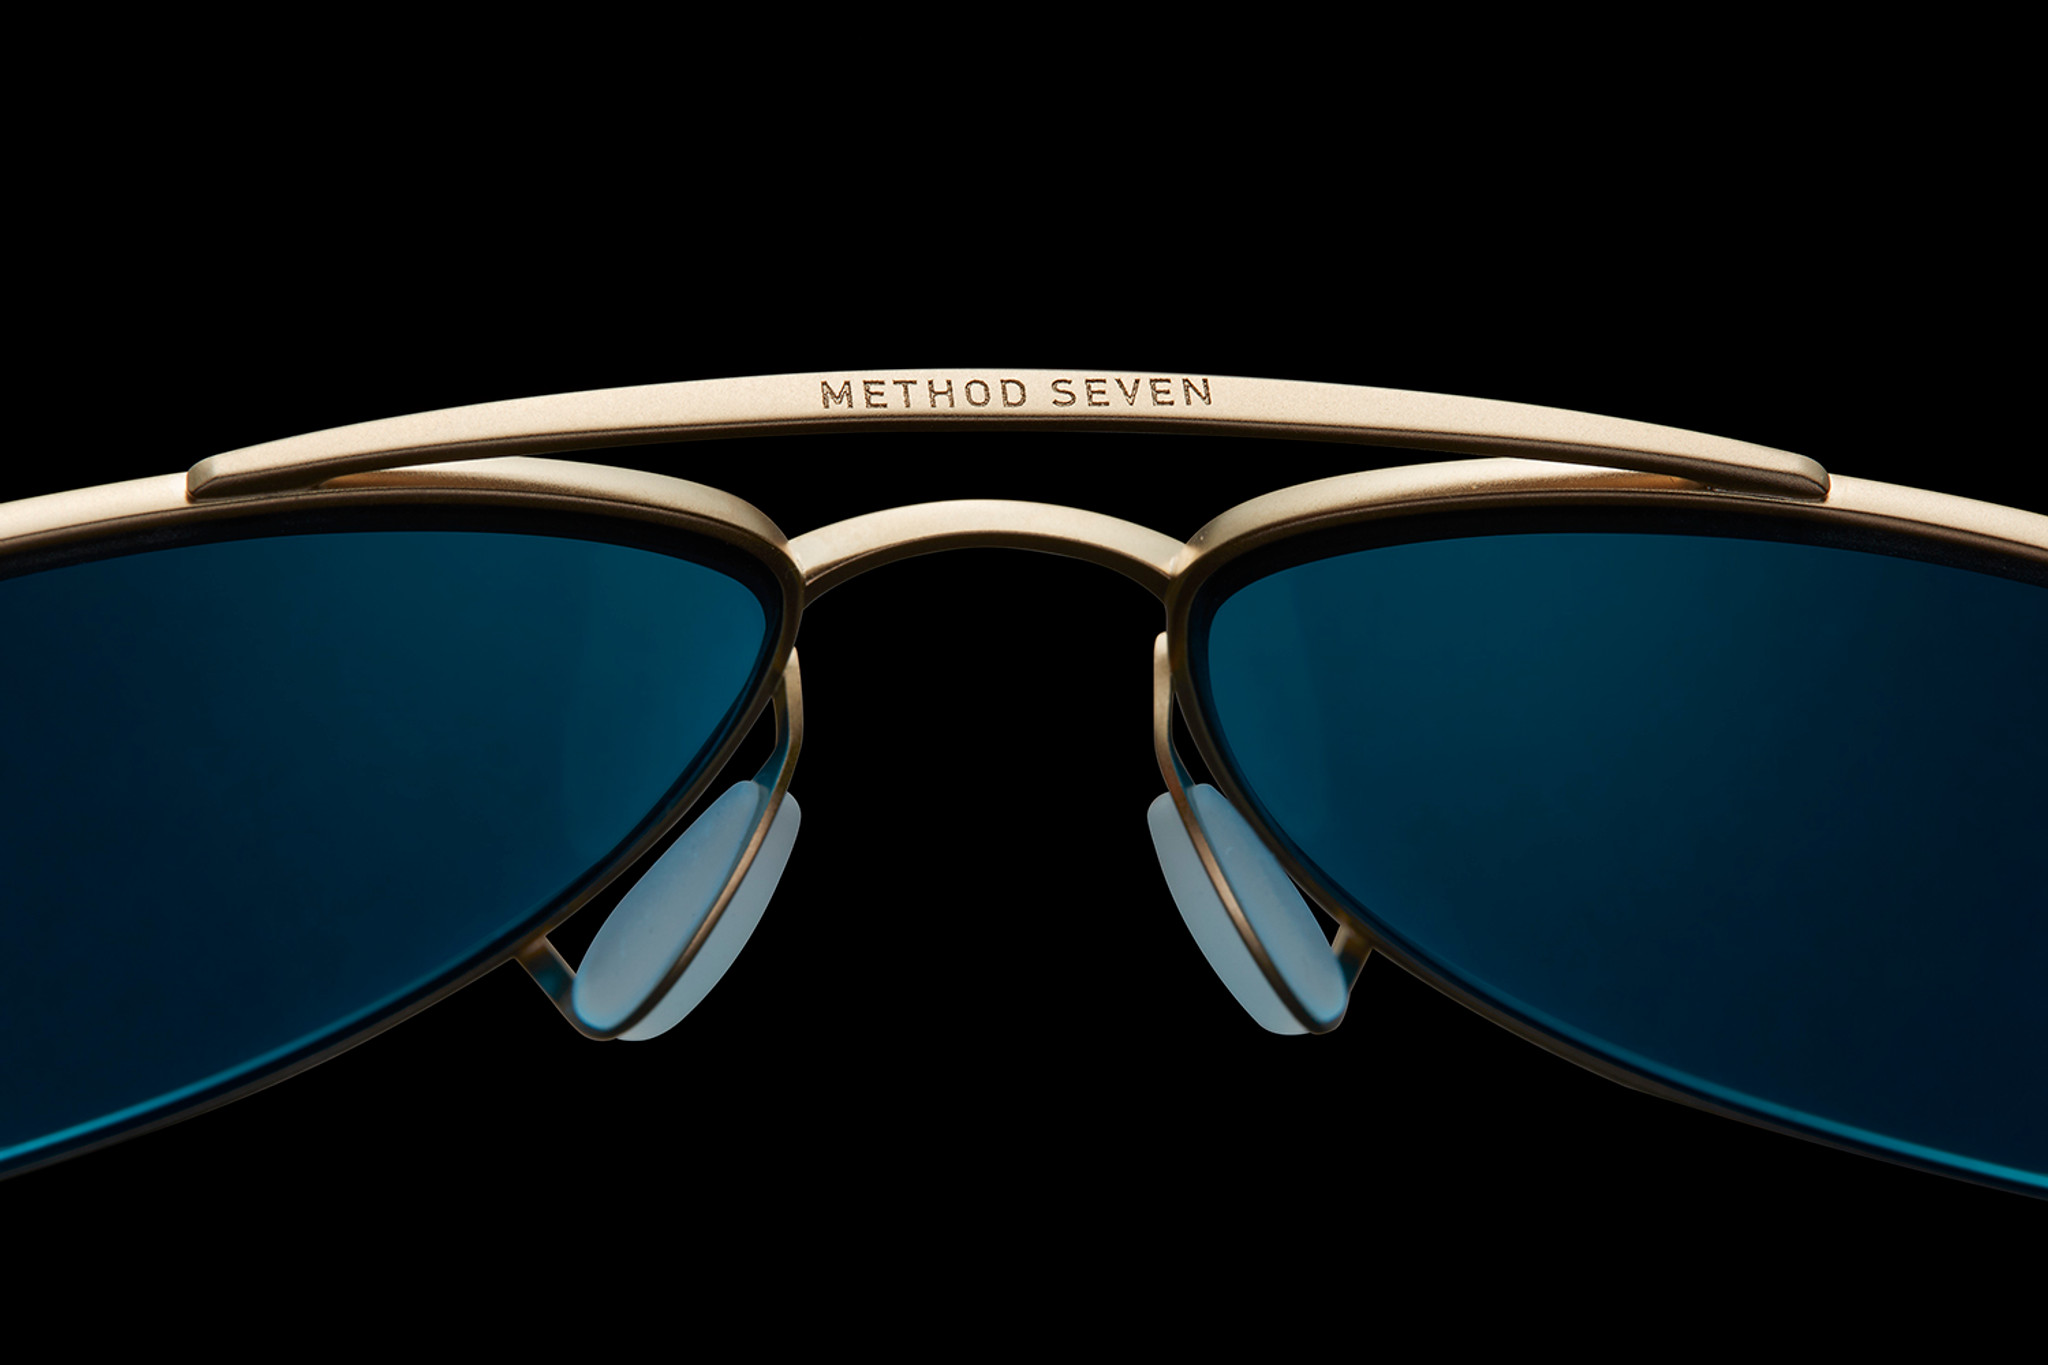 Enter to Win! Method Seven's Newest Sunglasses for Women Pilots